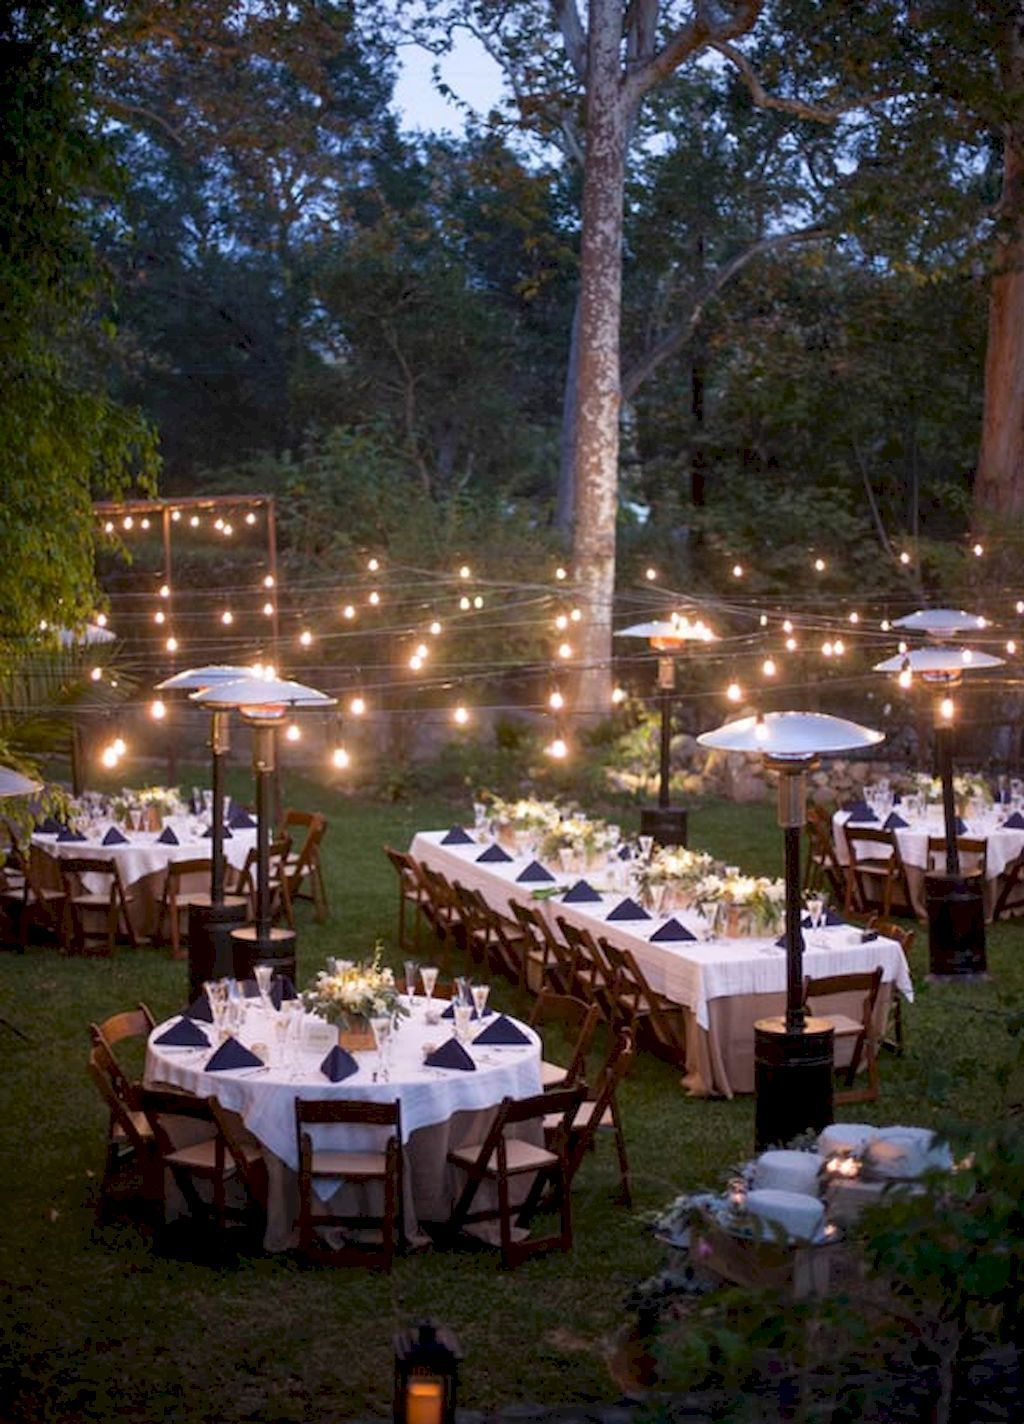 Outdoor garden wedding decoration ideas   Inexpensive Backyard Wedding Decor Ideas in   wedding and